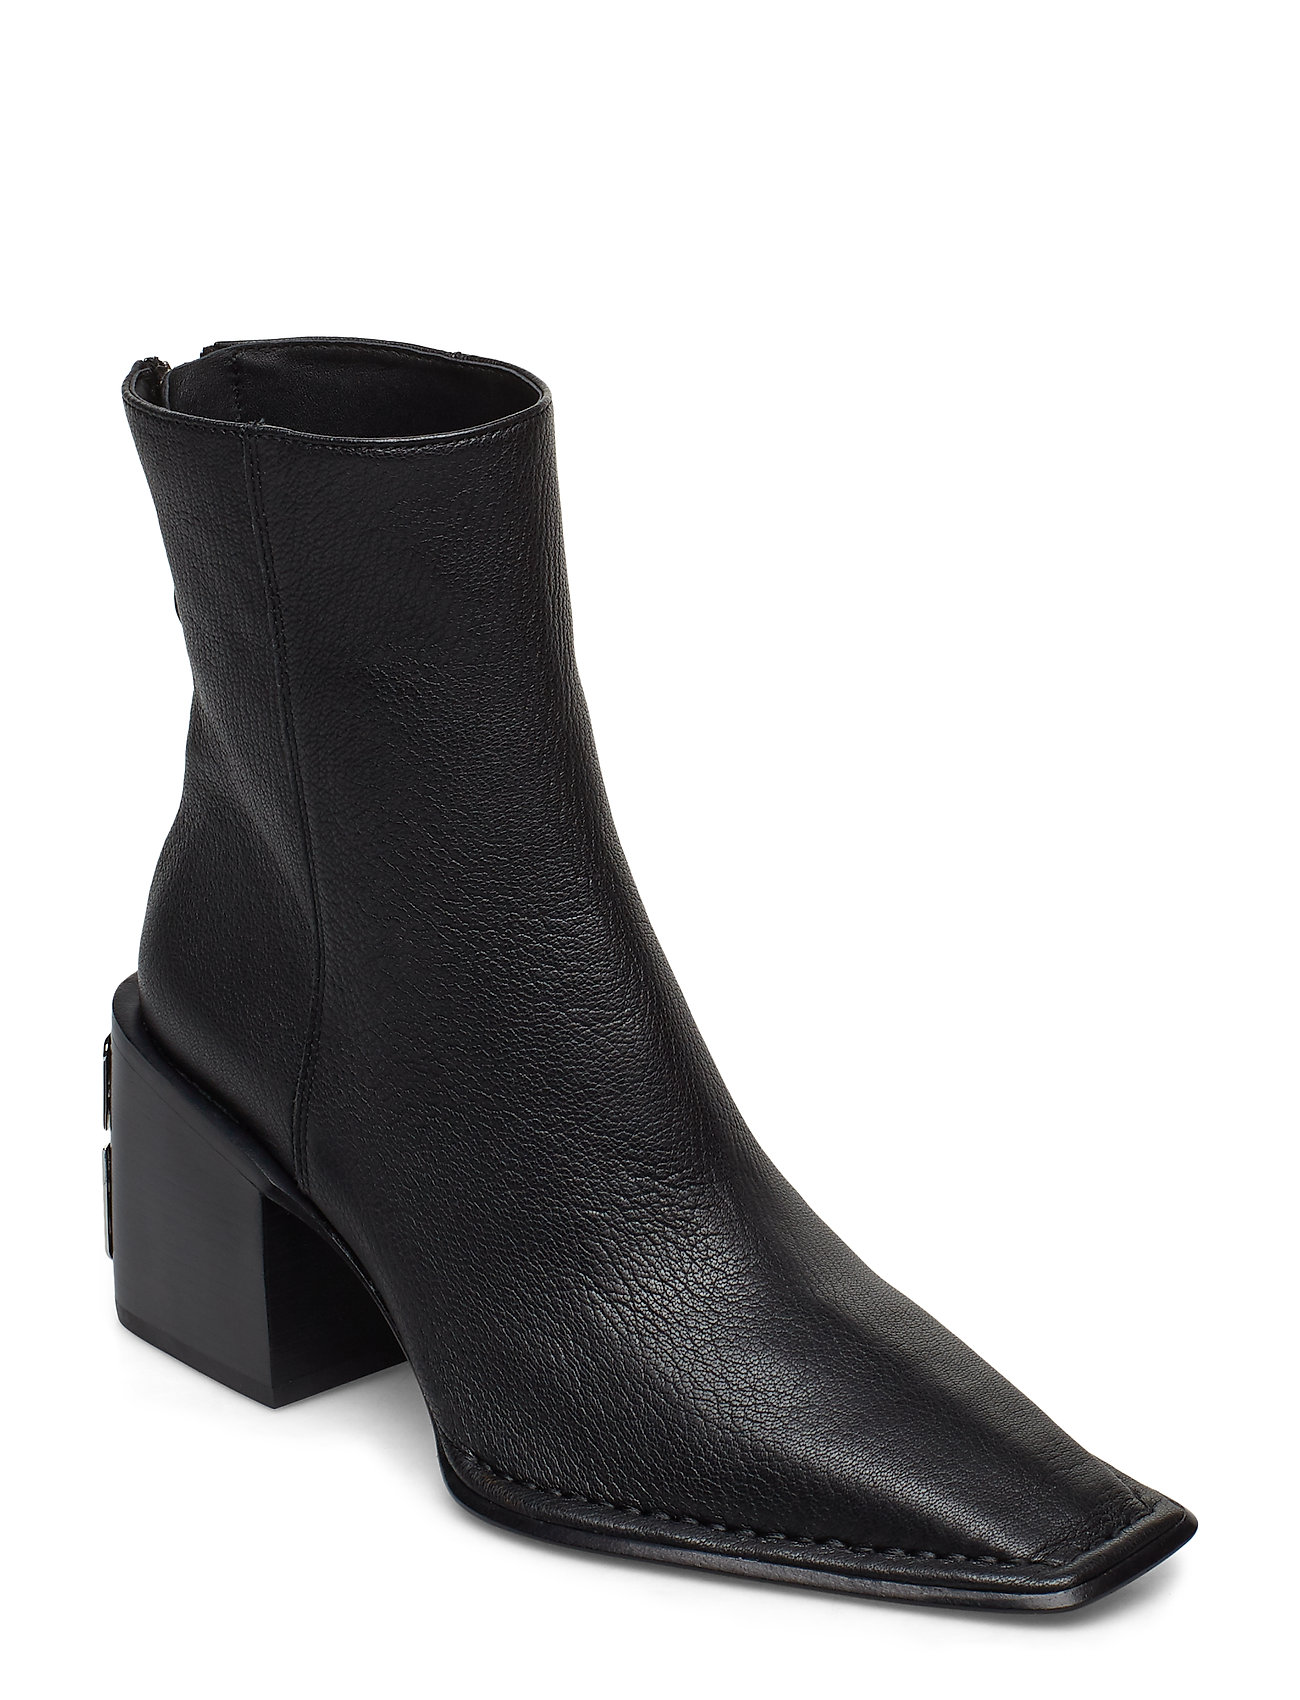 Image of Parker Boot Black Grain Leather Shoes Boots Ankle Boots Ankle Boots With Heel Sort Alexander Wang (3214087587)